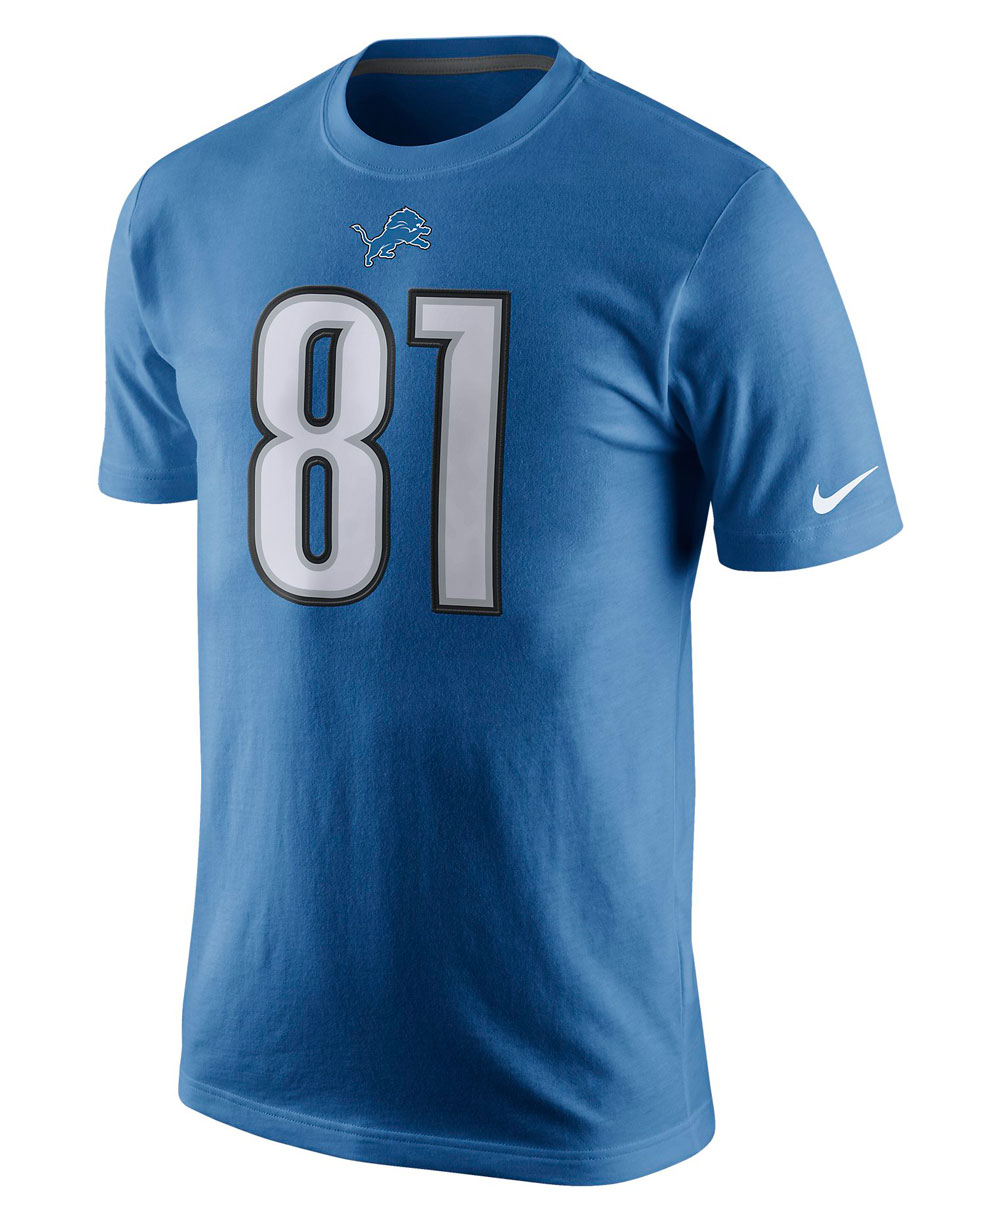 Herren T-Shirt Player Pride Name and Number NFL Lions / Calvin Johnson